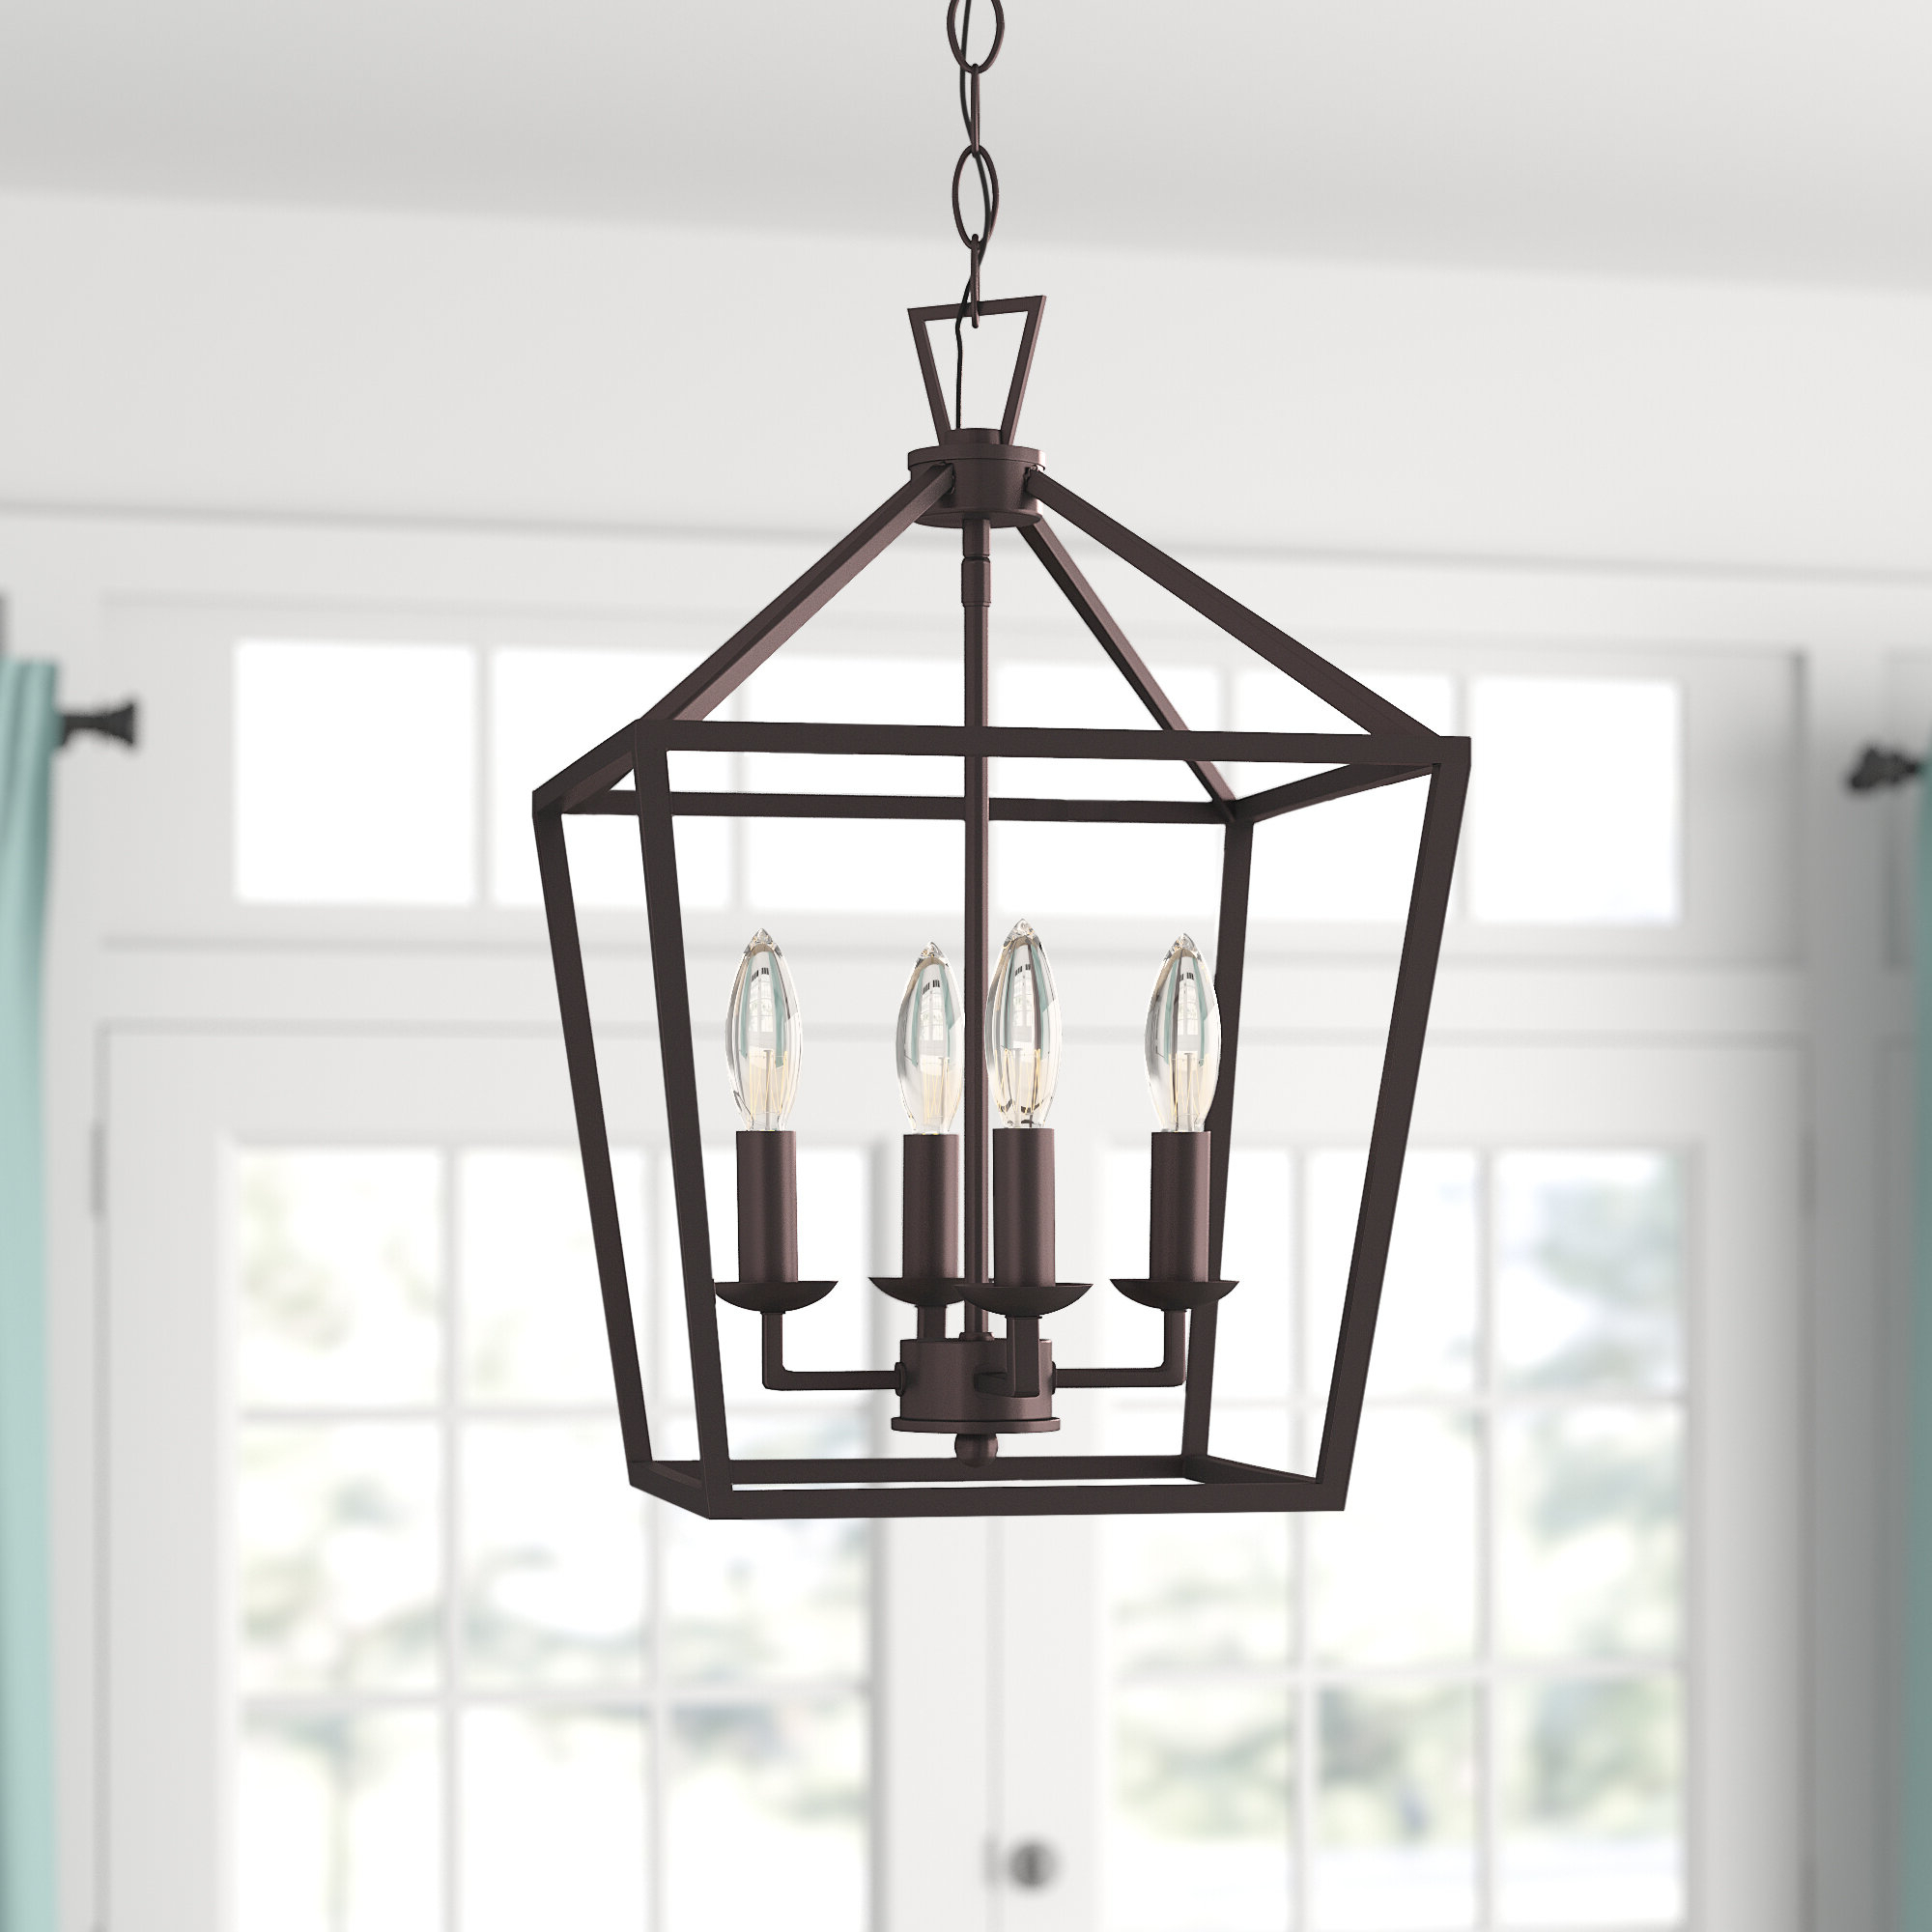 Most Current Carmen 8 Light Lantern Geometric Pendants Inside Carmen 4 Light Lantern Geometric Pendant & Reviews (View 15 of 20)